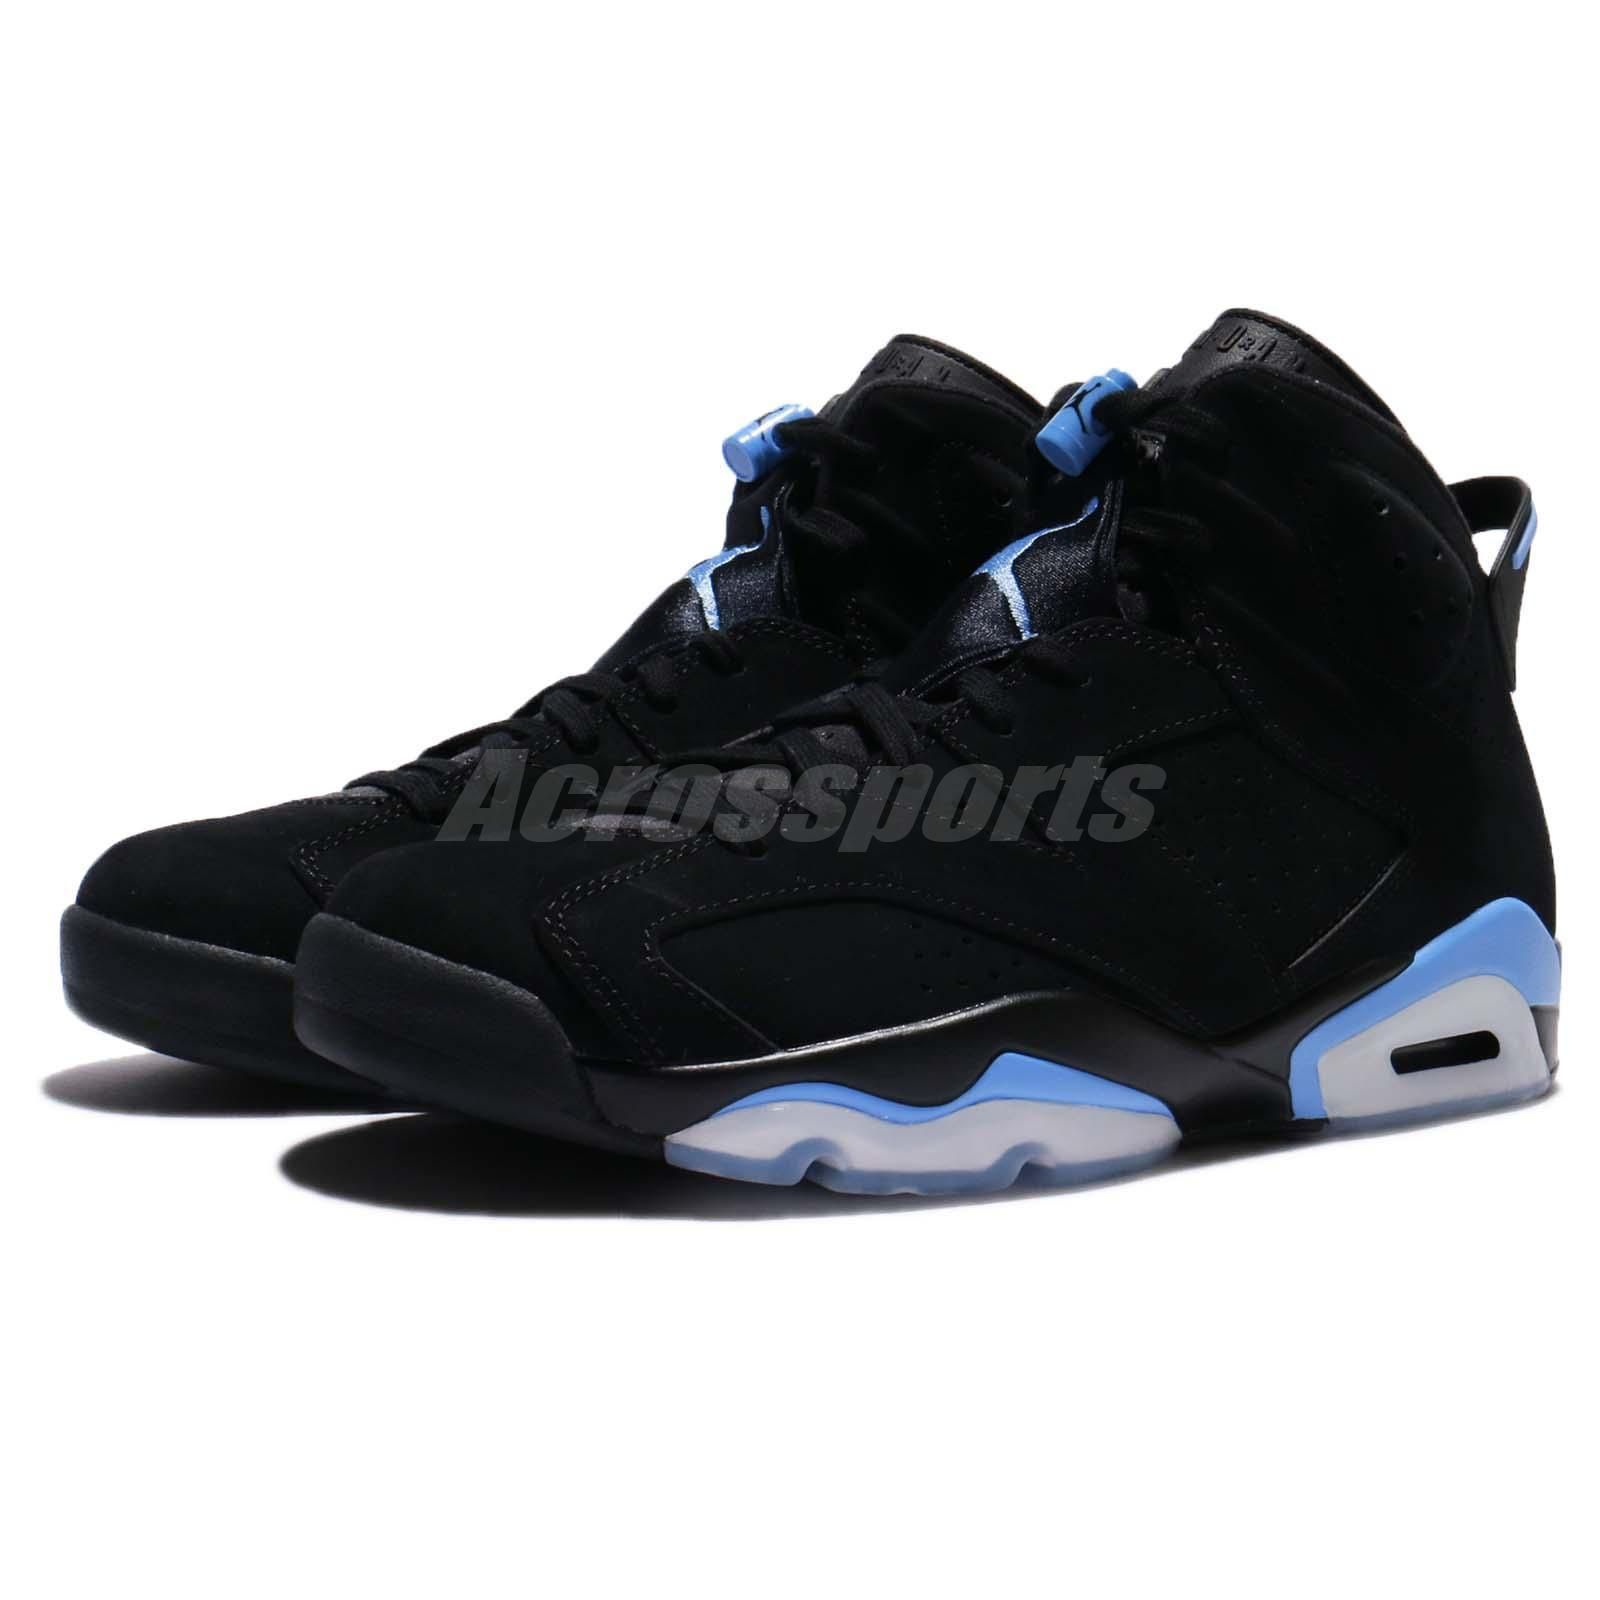 7d378d6919ba Nike Air Jordan 6 Retro VI UNC University Blue Black AJ6 Shoes Men  384664-006 S N  384664006 Color  BLACK UNIVERSITY BLUE Made In   Condition  Brand New ...